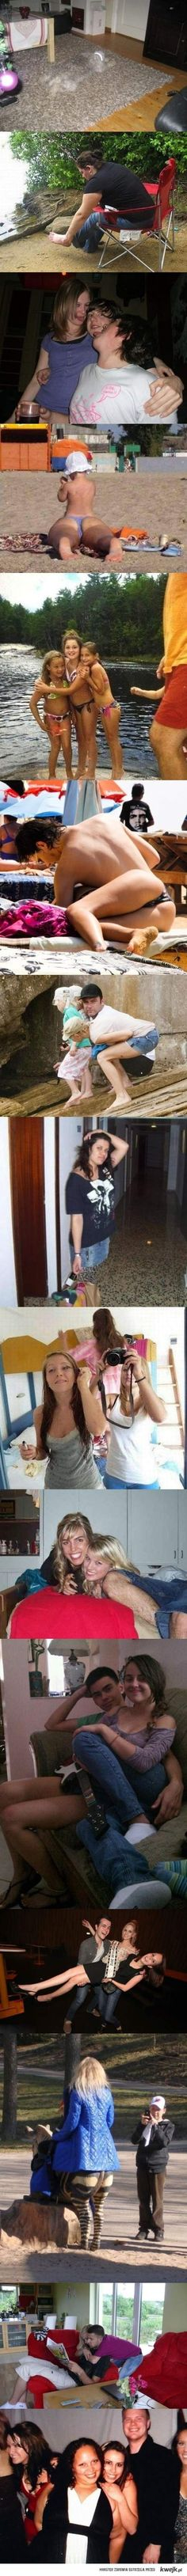 unintentional weird photos.  Gotta love 'em!  haha SO FUNNY!!!!!!!!!